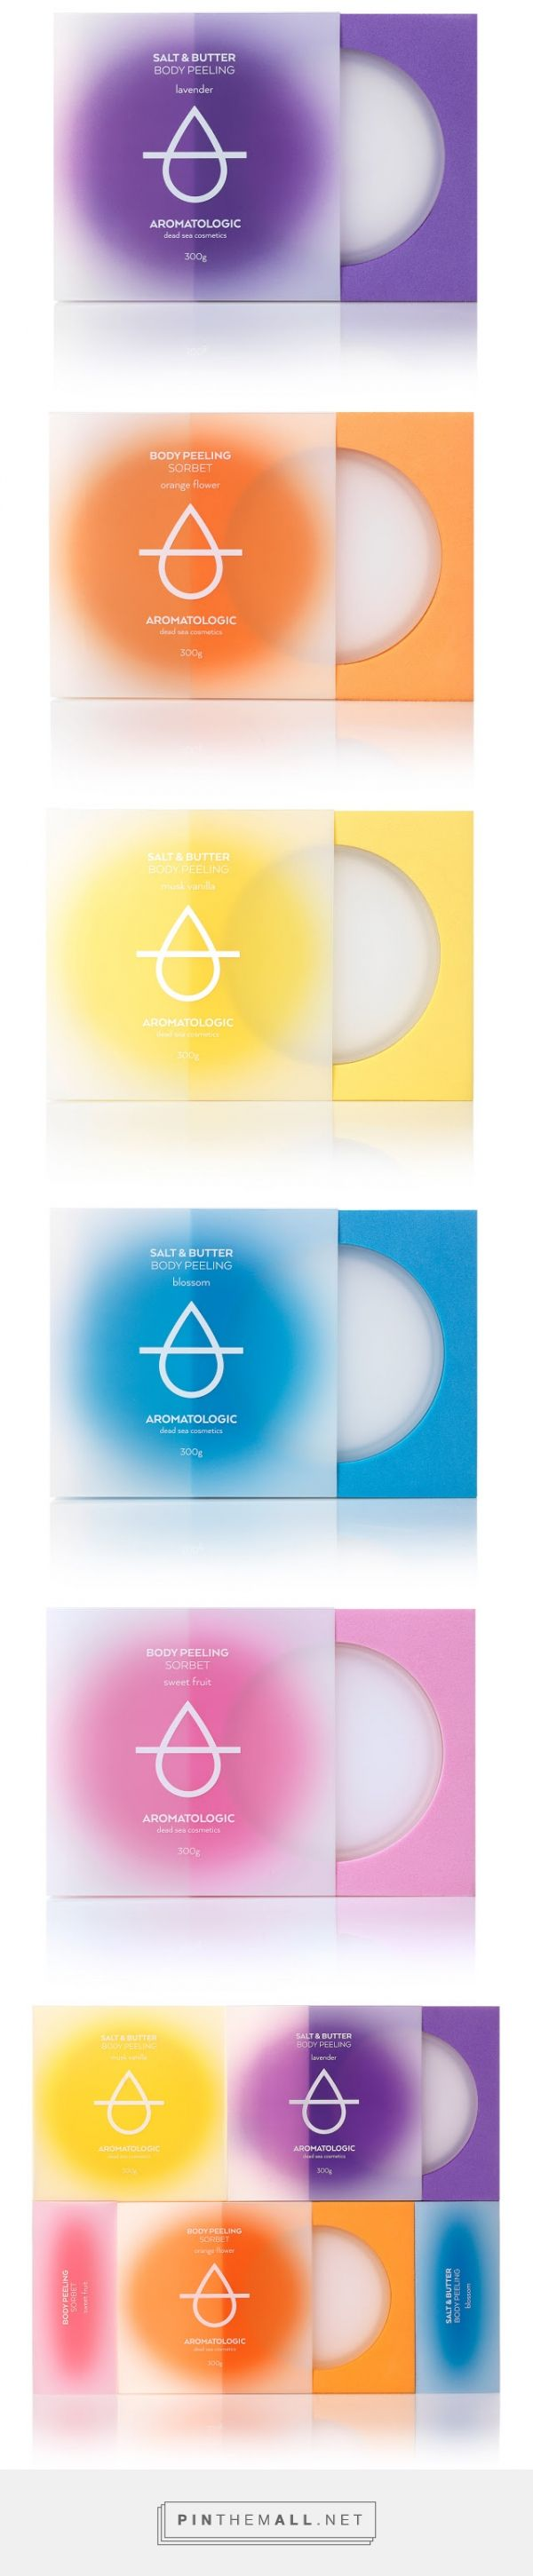 Aromatologic Spa #Cosmetics #packaging designed by Mousegraphics​ - http://www.packagingoftheworld.com/2015/06/aromatologic-spa-cosmetics.html